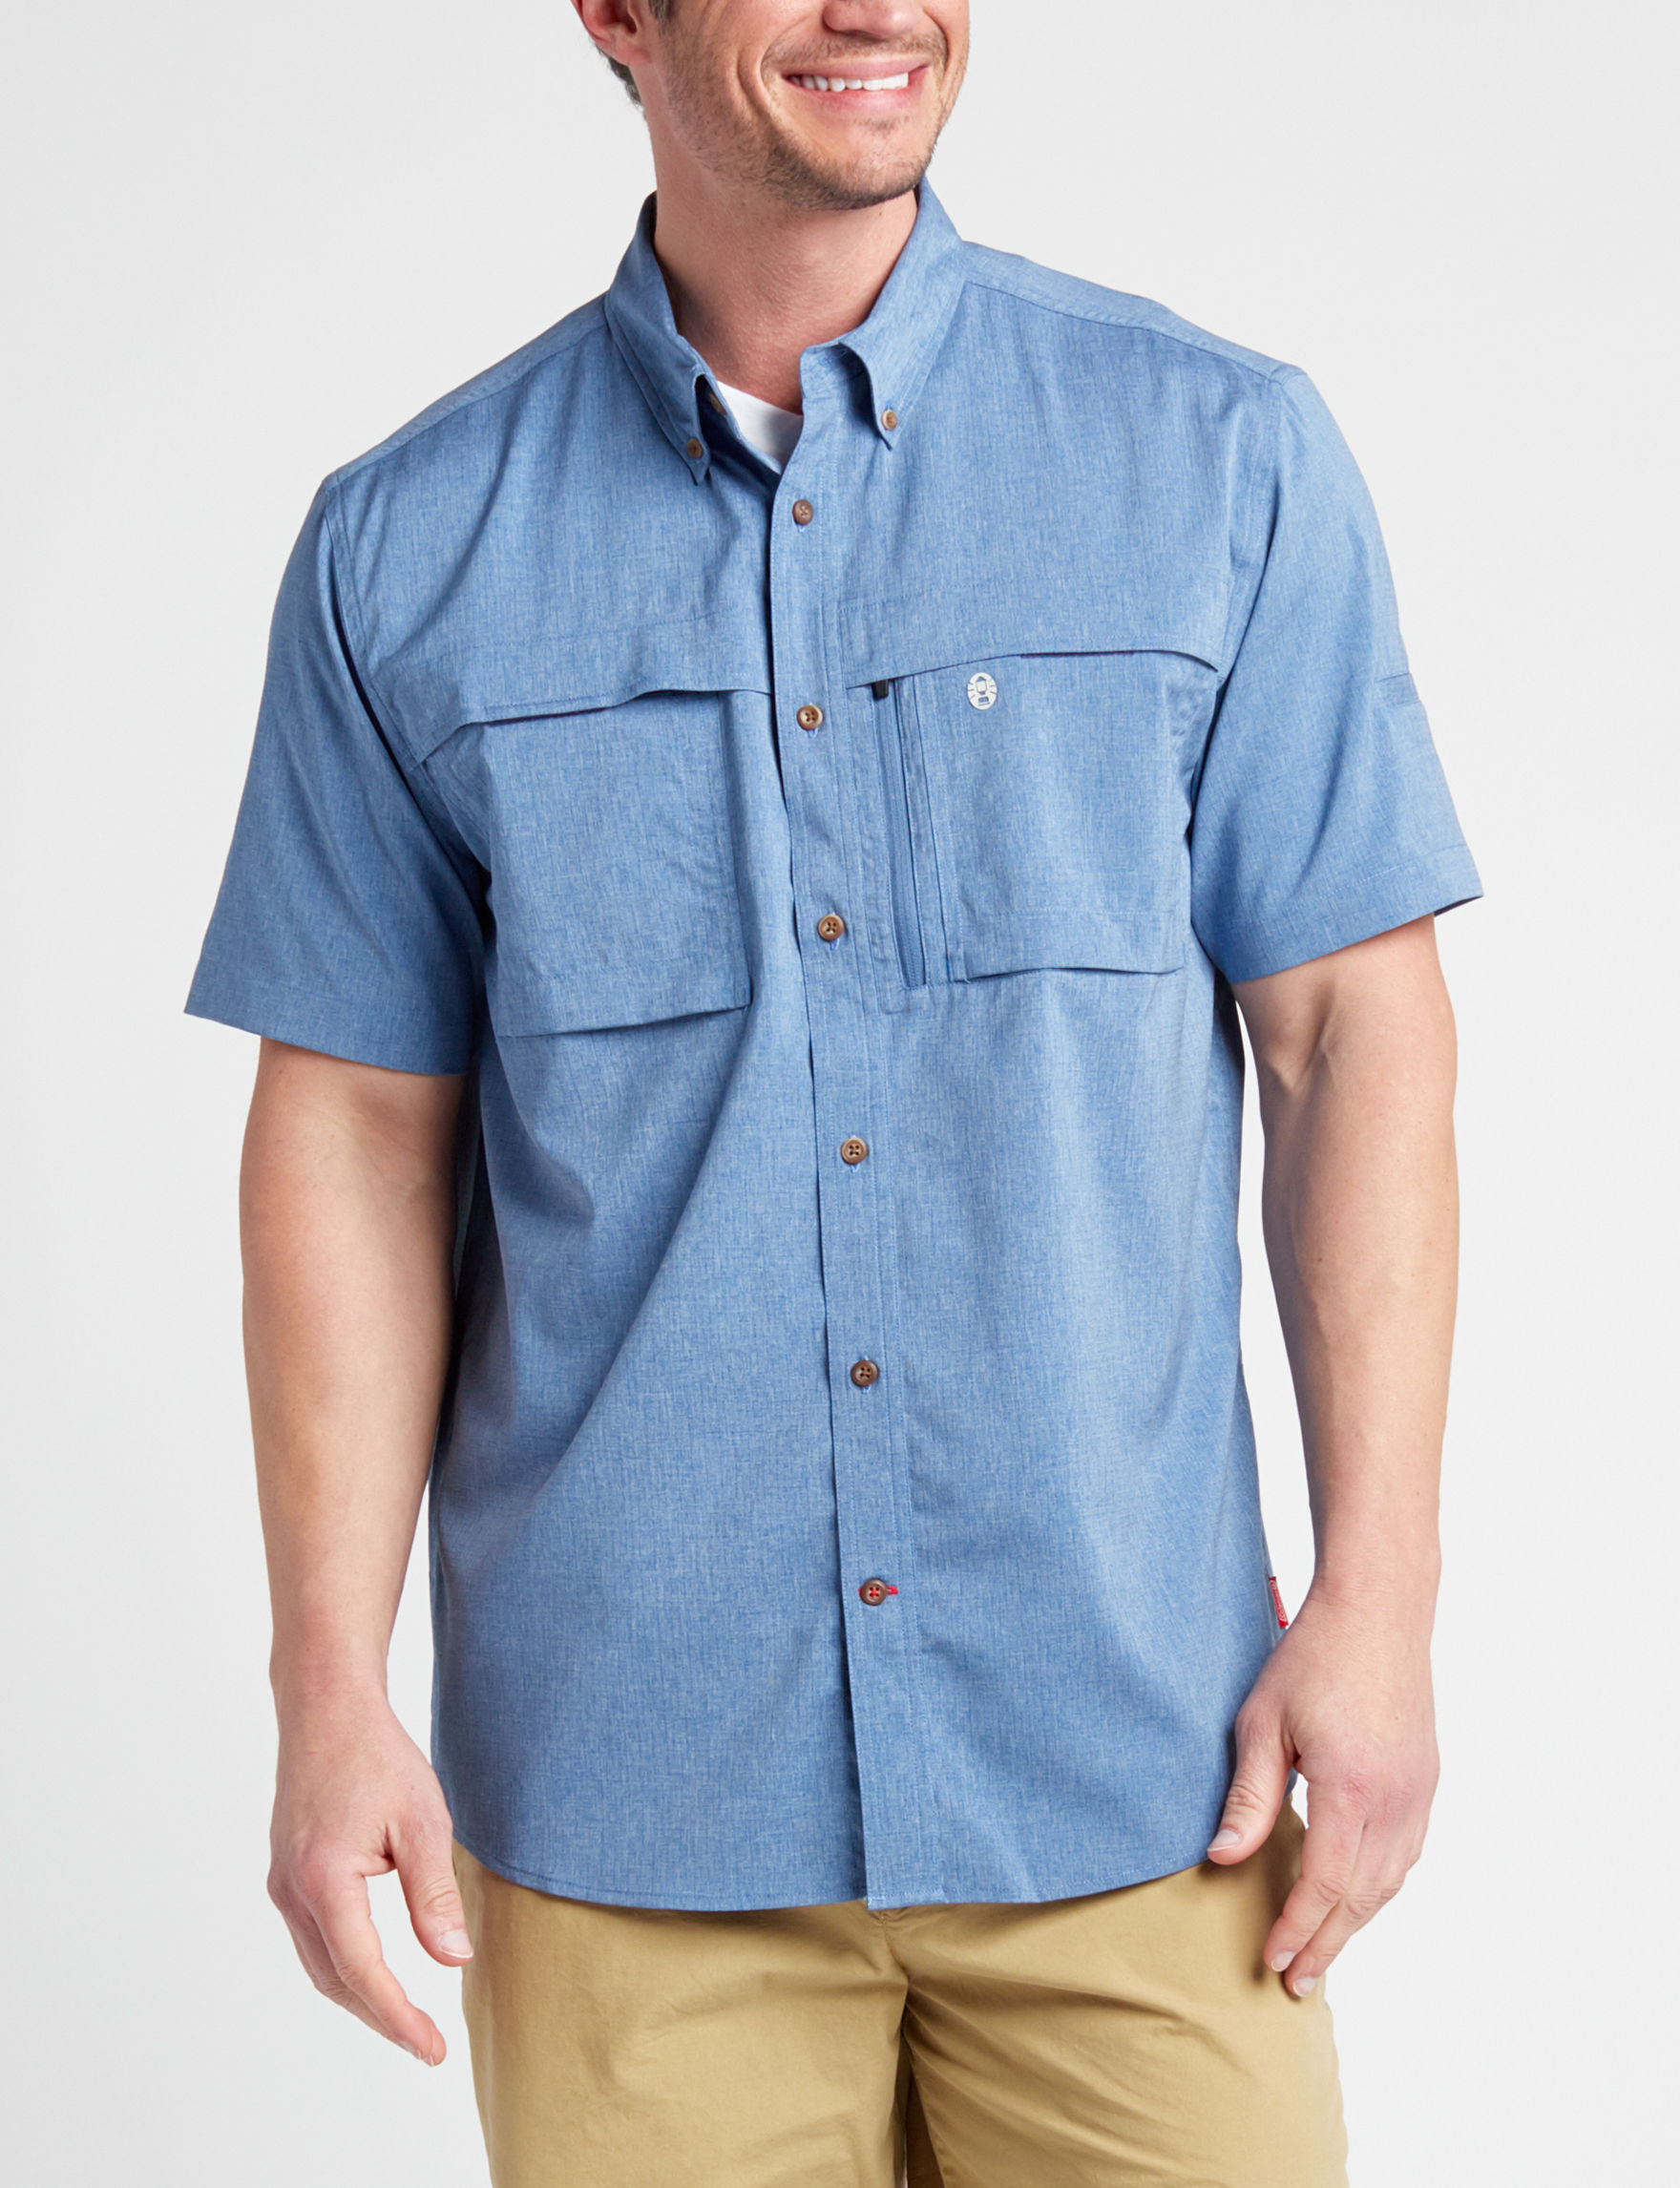 Coleman Heather Blue Casual Button Down Shirts